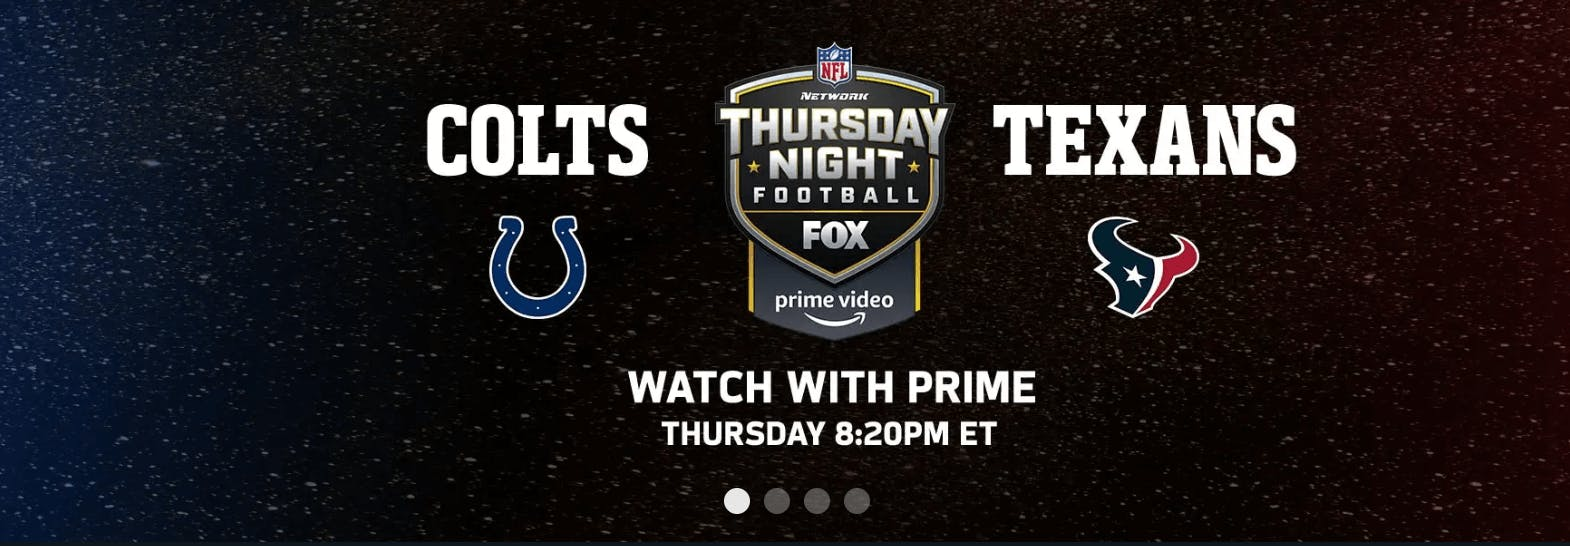 colts texans amazon streaming nfl